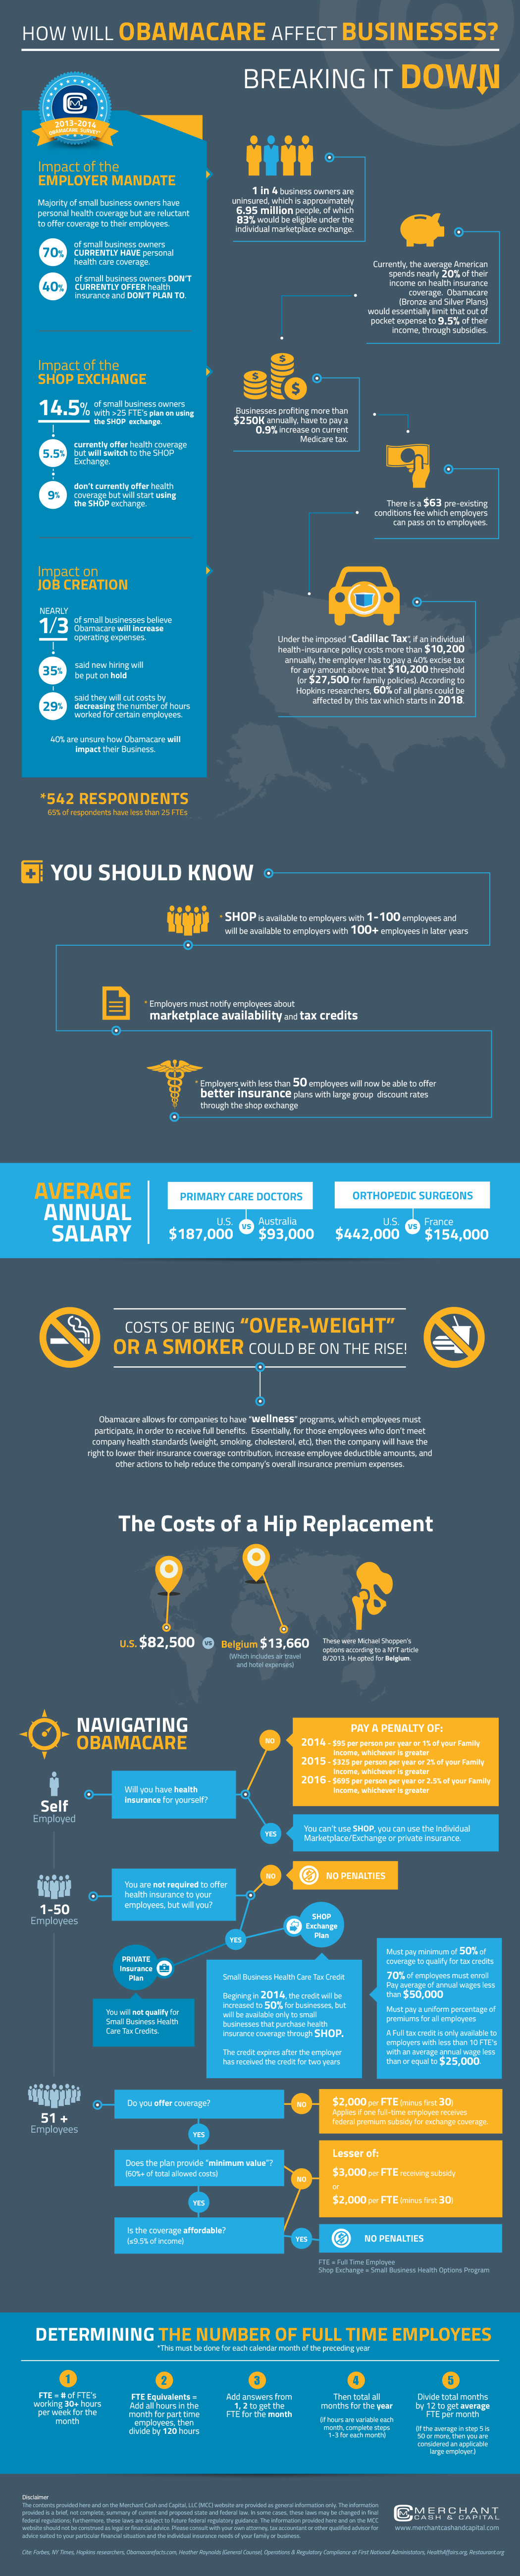 obamacare infographic